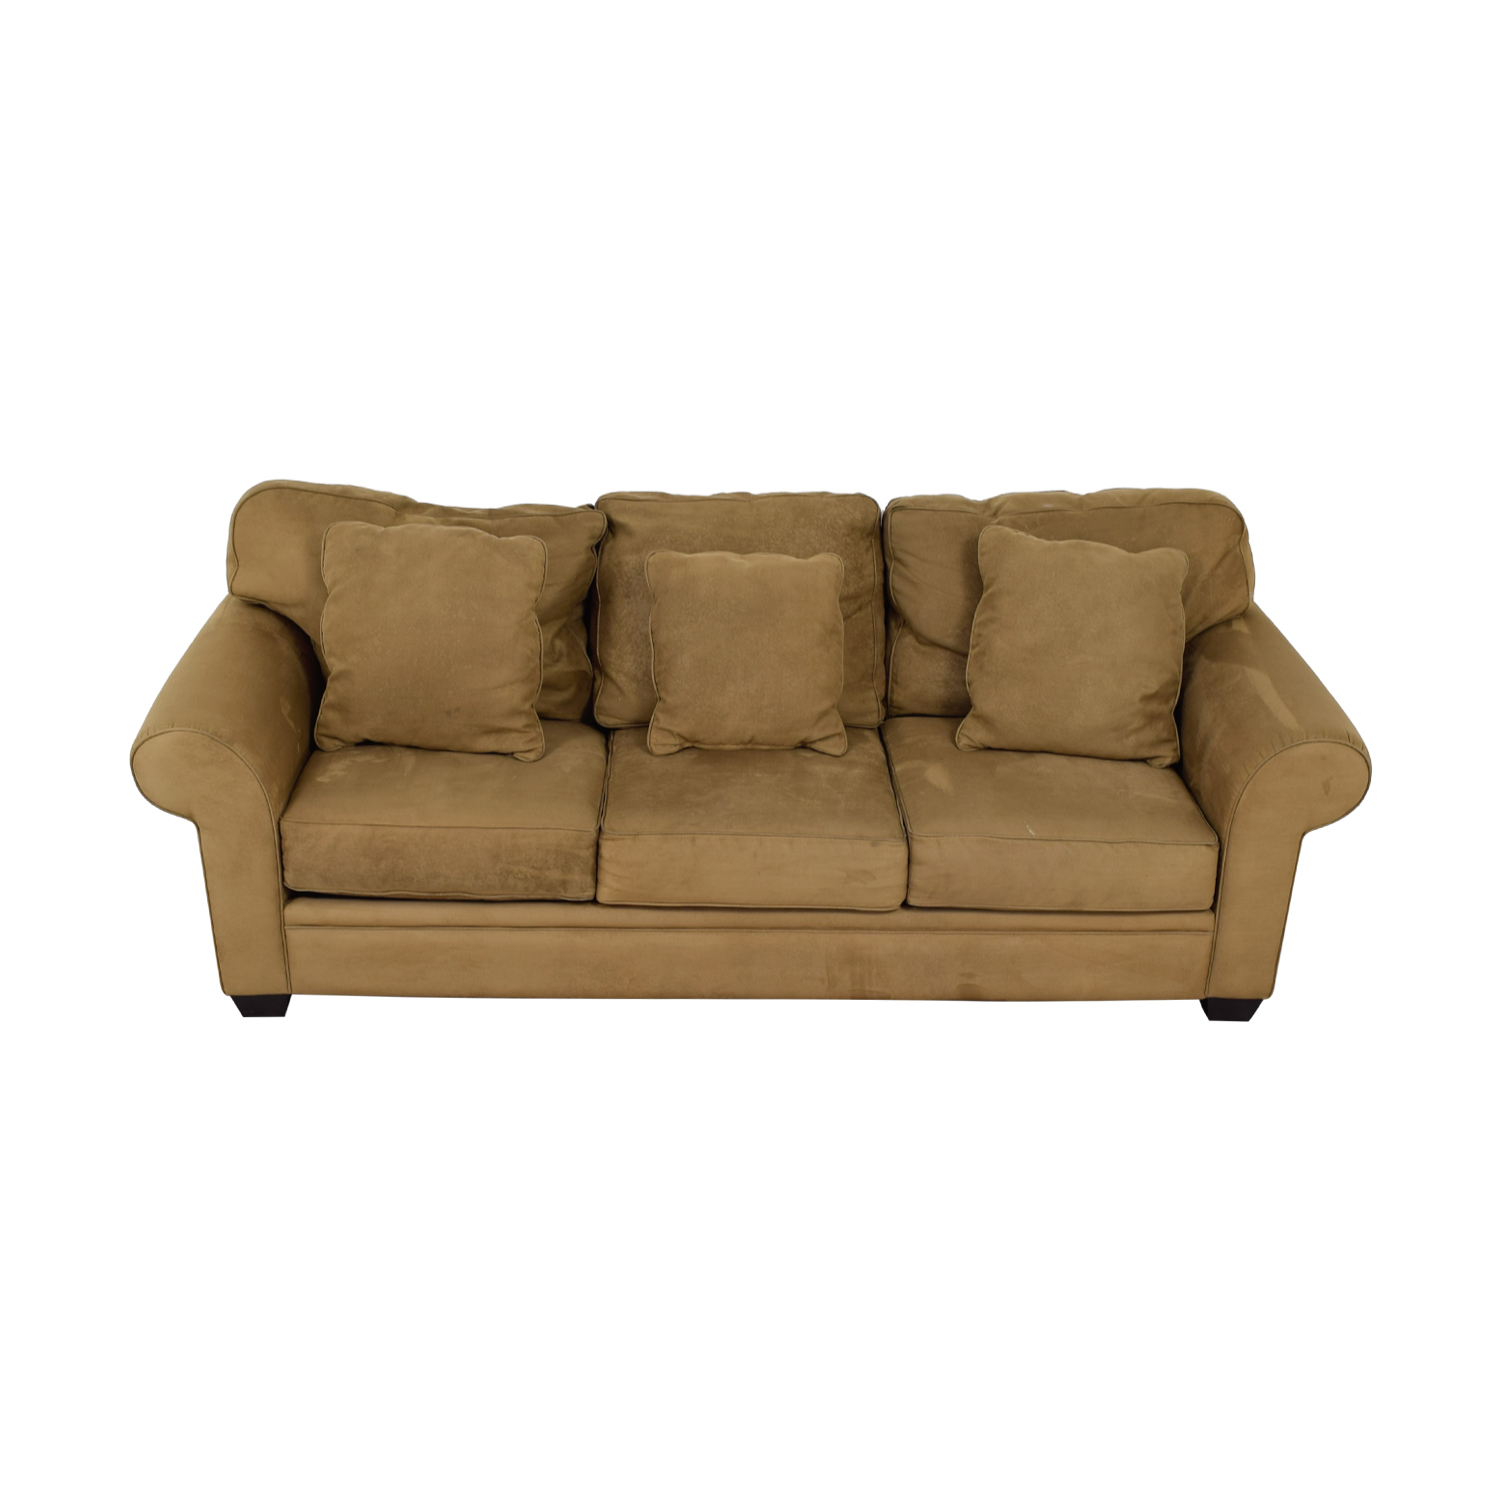 buy Macy's Macy's Brown Microfiber Three-Cushion Couch online